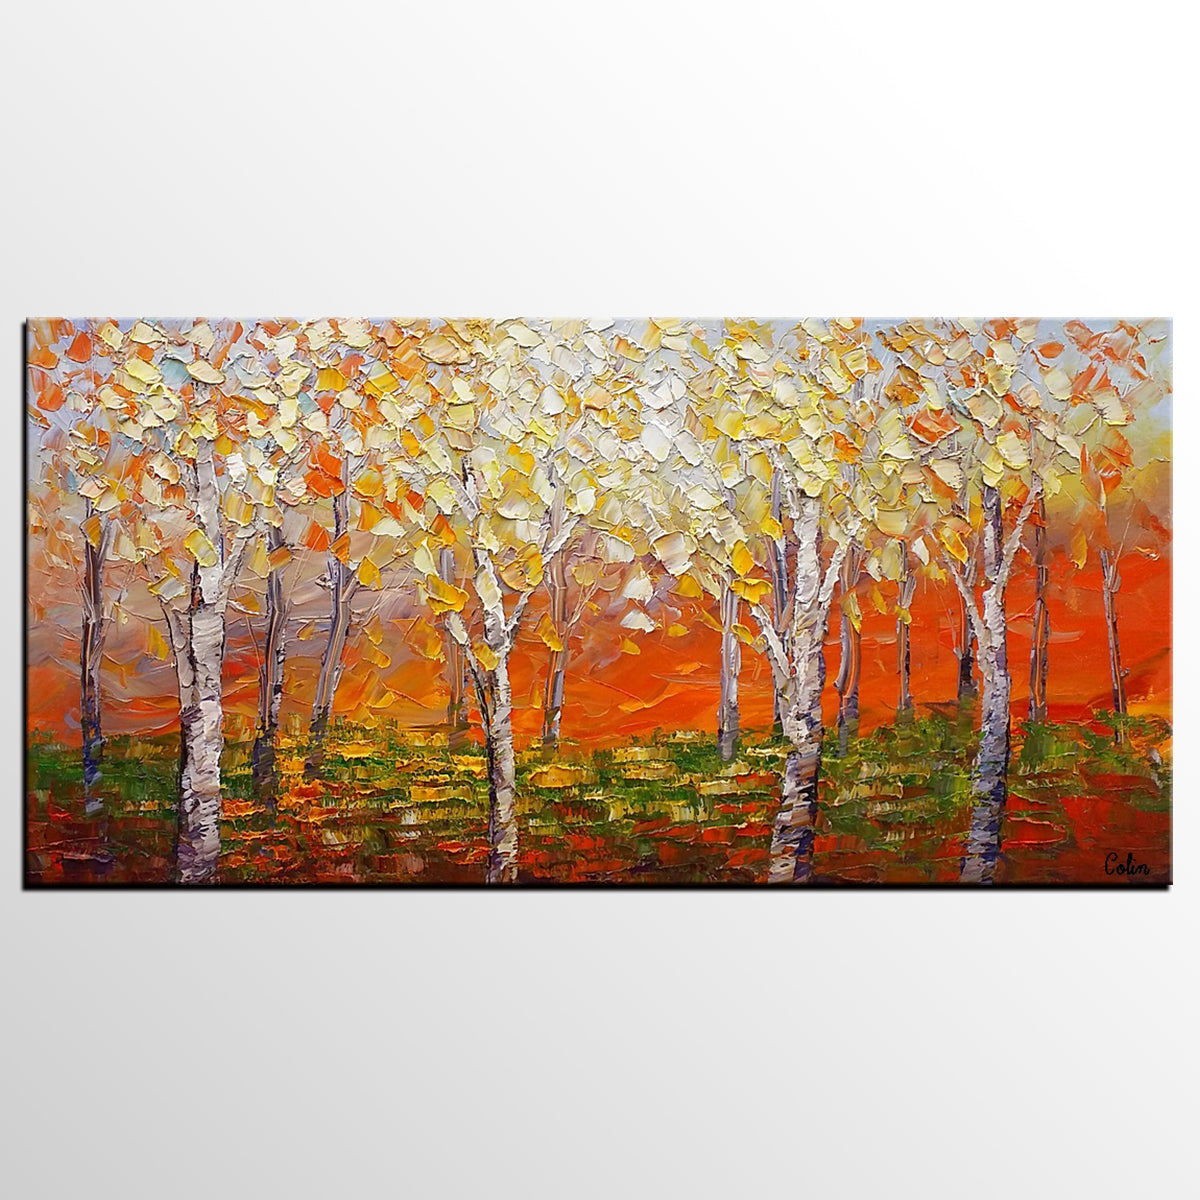 Landscape Painting, Large Art, Canvas Painting, Modern Wall Art, Canvas Art, Wall Art, Original Artwork, Abstract Painting, Modern Art, Tree Painting